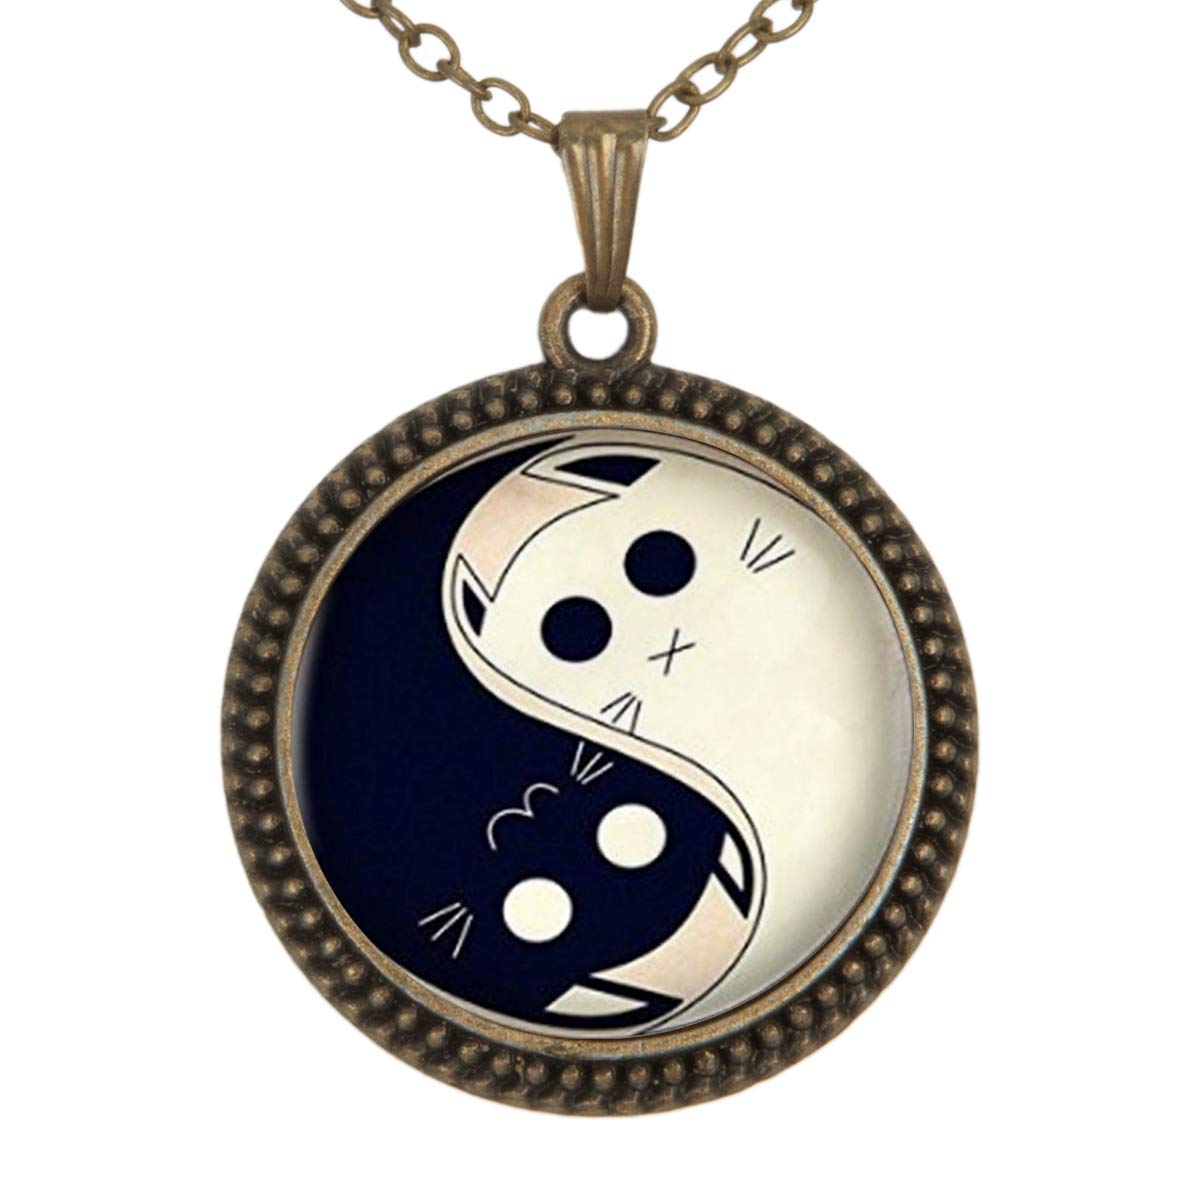 Lovely Yin Yang Cats Pendant Necklace Vintage Bronze Chain Statement Necklace Handmade Jewelry Gifts